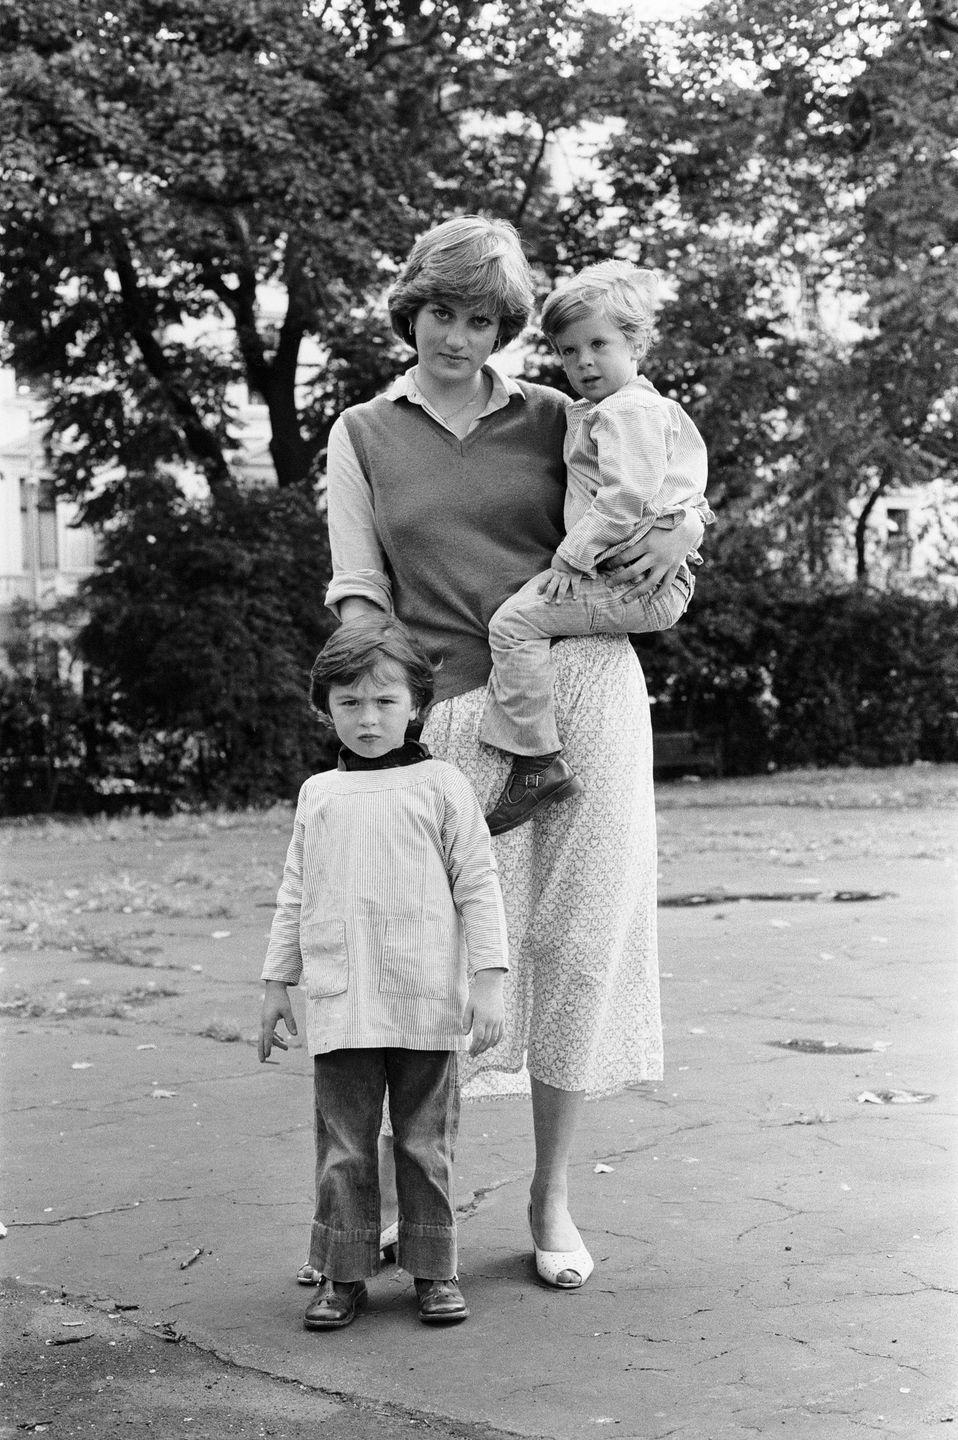 <p>Diana worked as a nursery school assistant in London before she married Prince Charles in 1981. Here, she is photographed with some of her students in the park. </p>